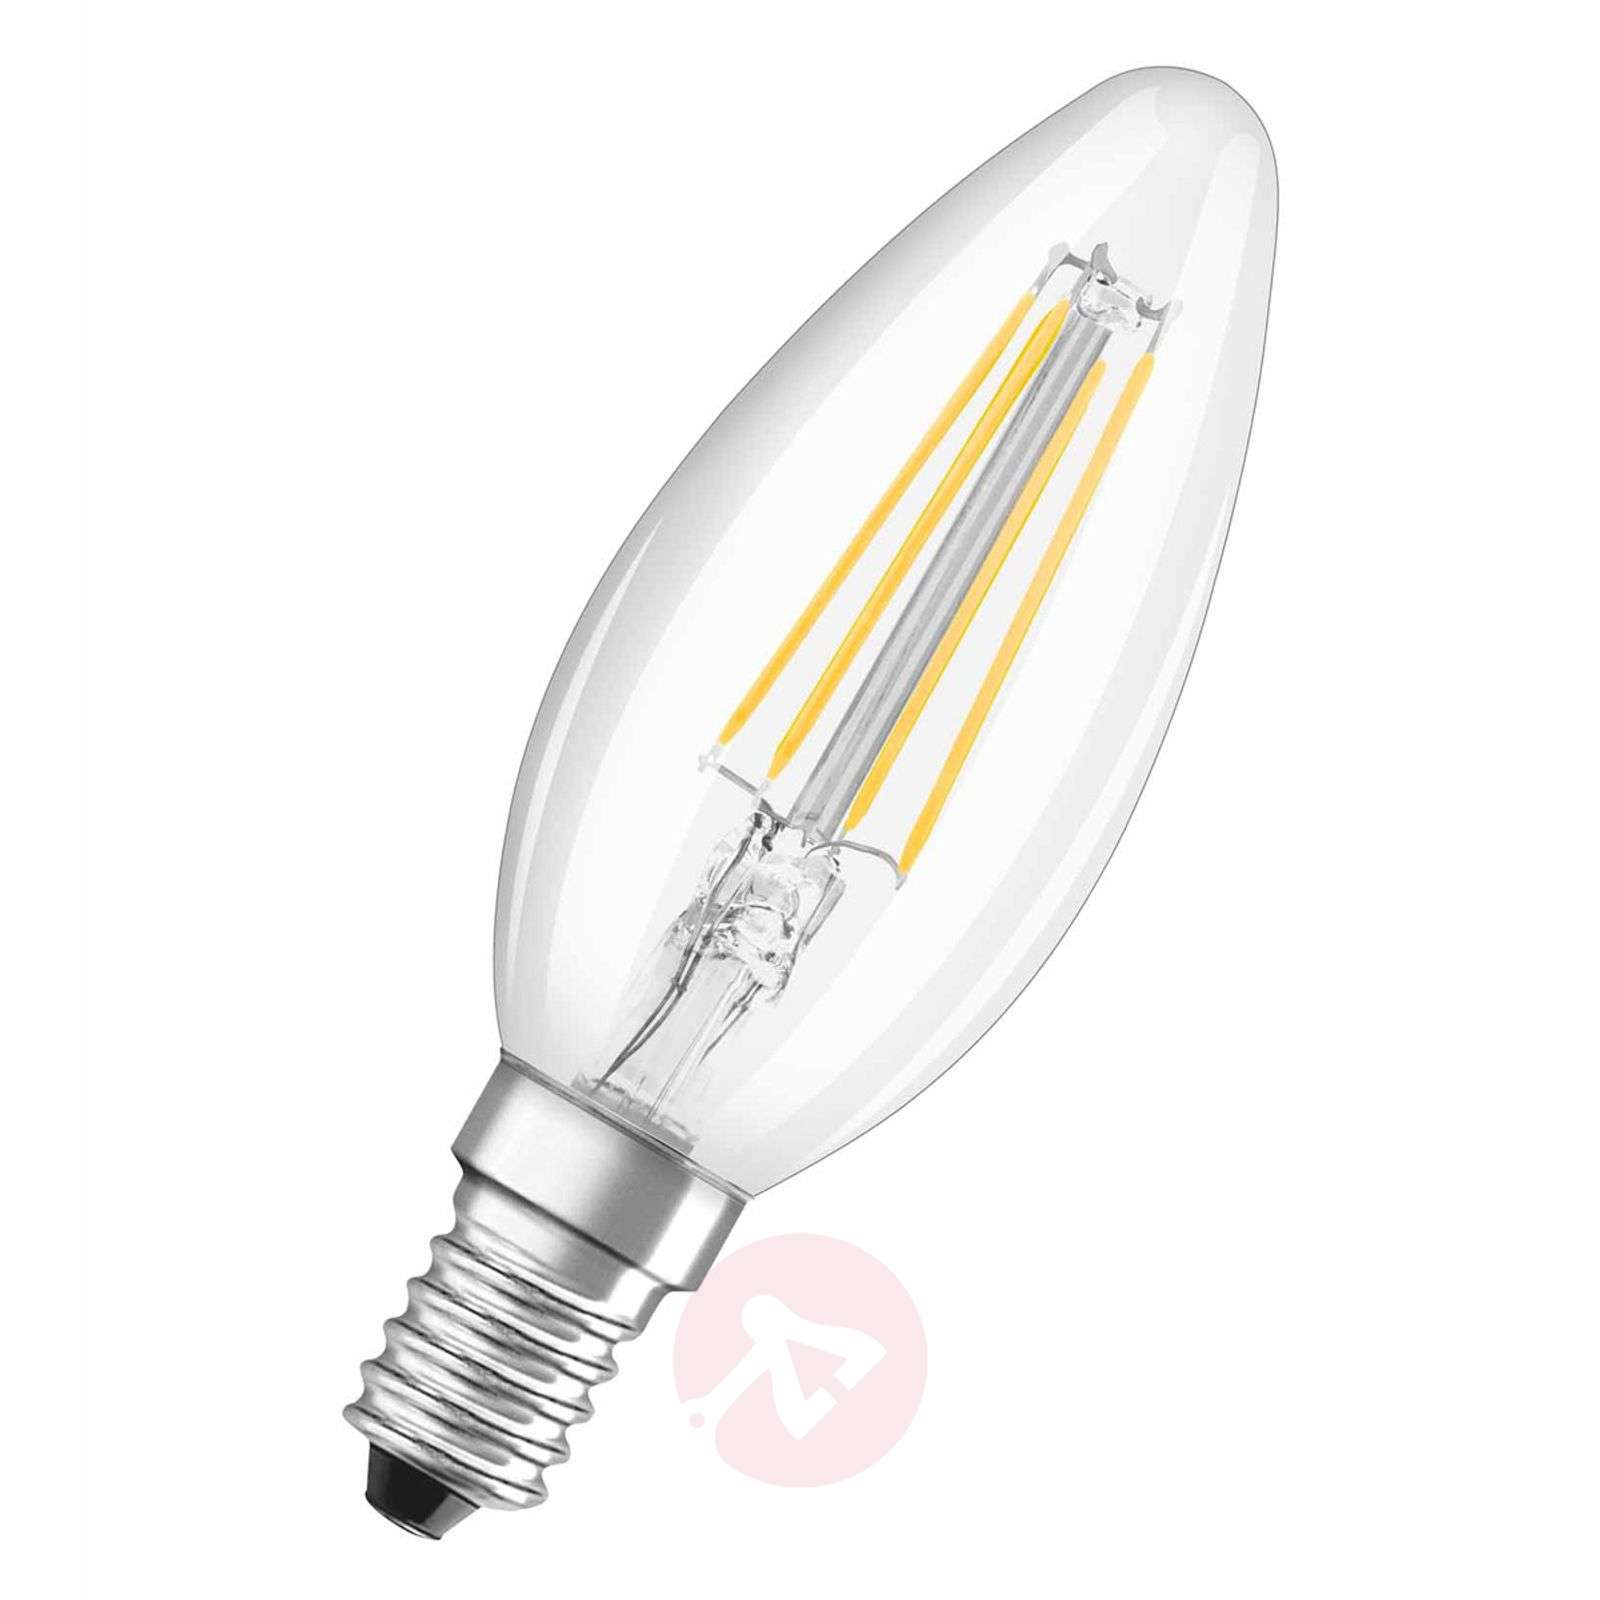 Ampoule flam. à filament LED E14 4 W 827, kit de 2